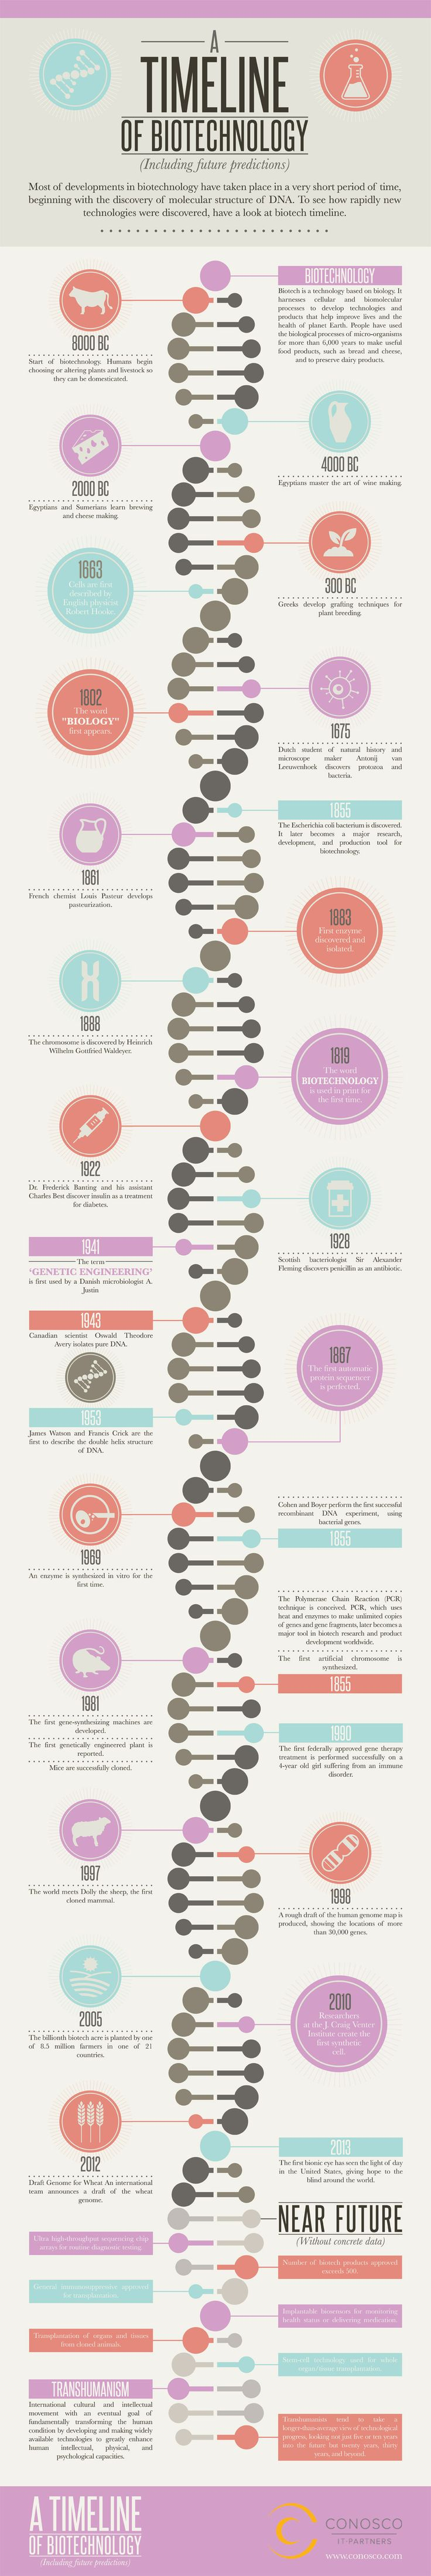 A Timeline of Biotech (Including Future Predictions) | Visual.ly